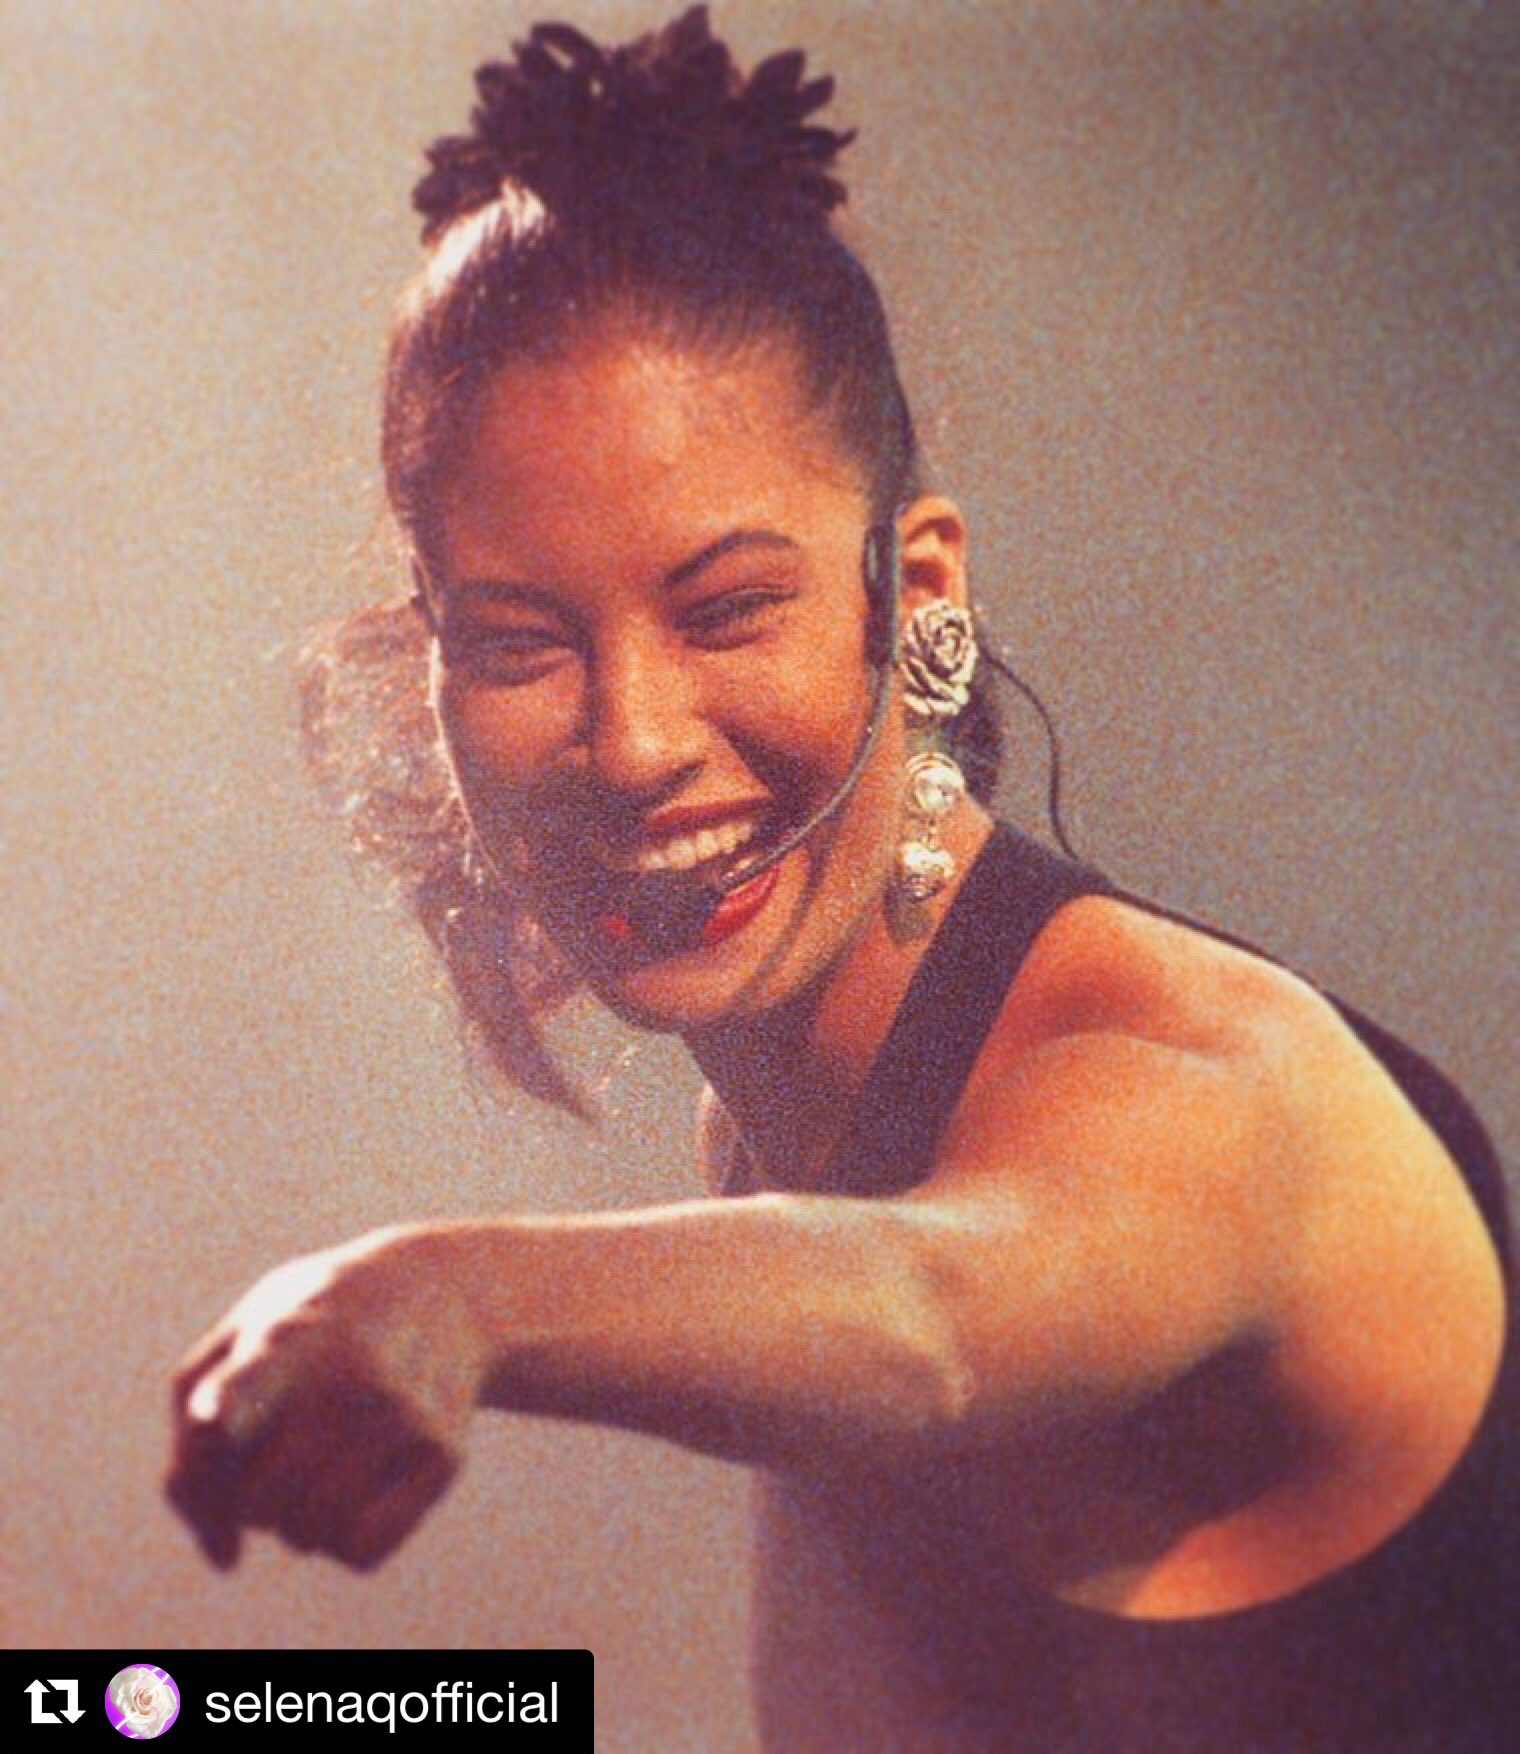 Happy birthday to the one and only, Selena Quintanilla!